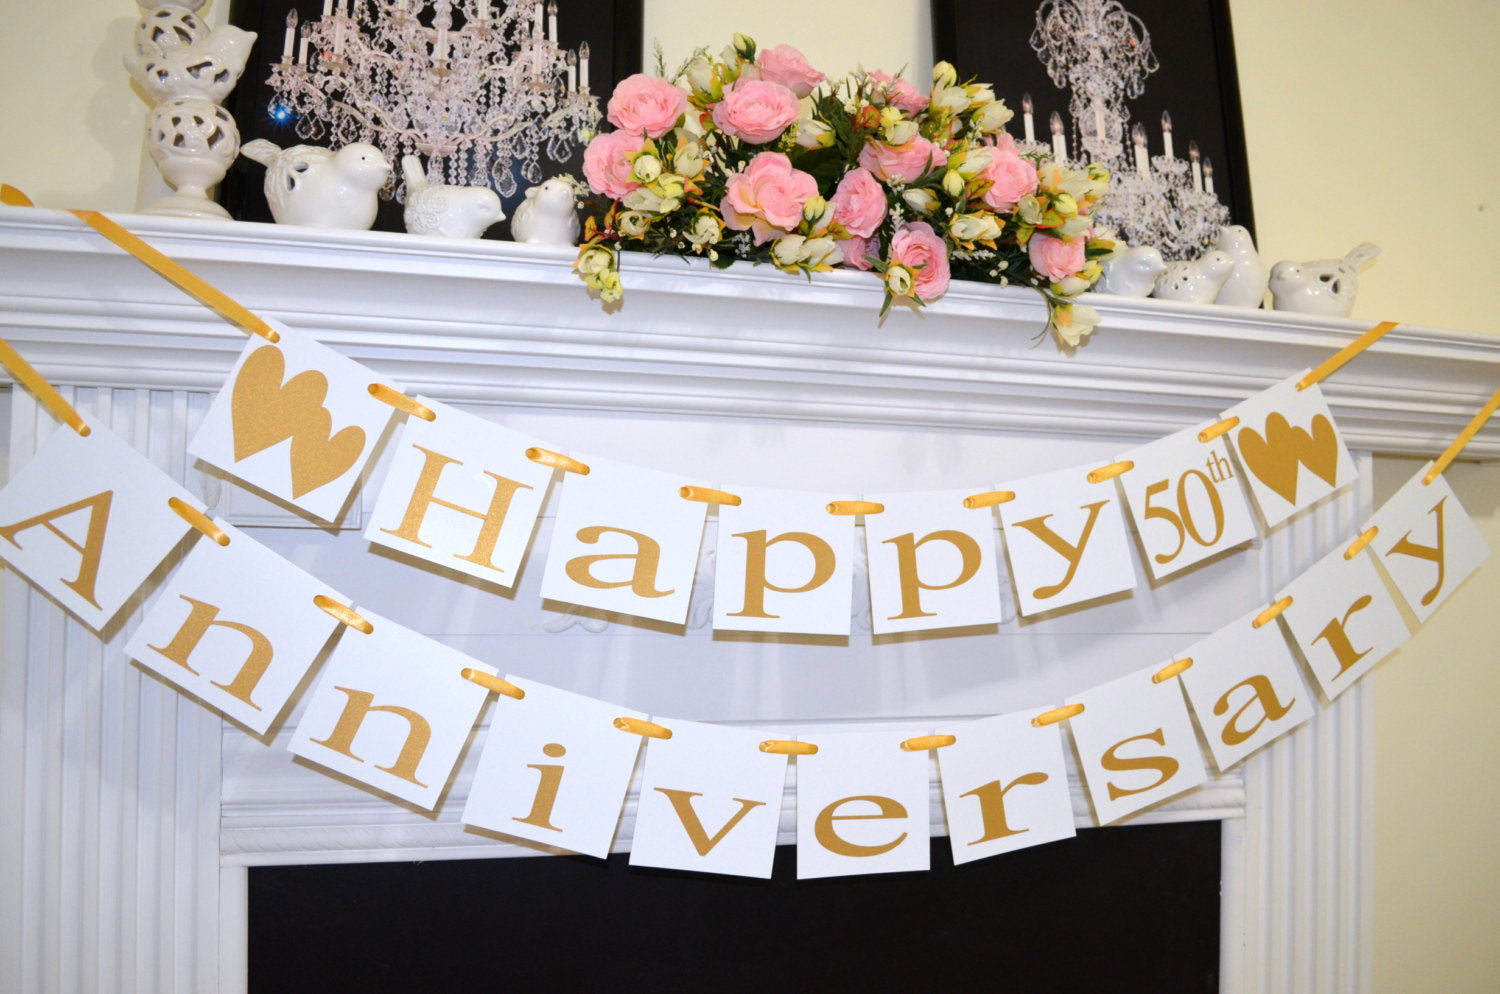 anniversary with table centerpieces decorations decor pictures cutouts pin roses and